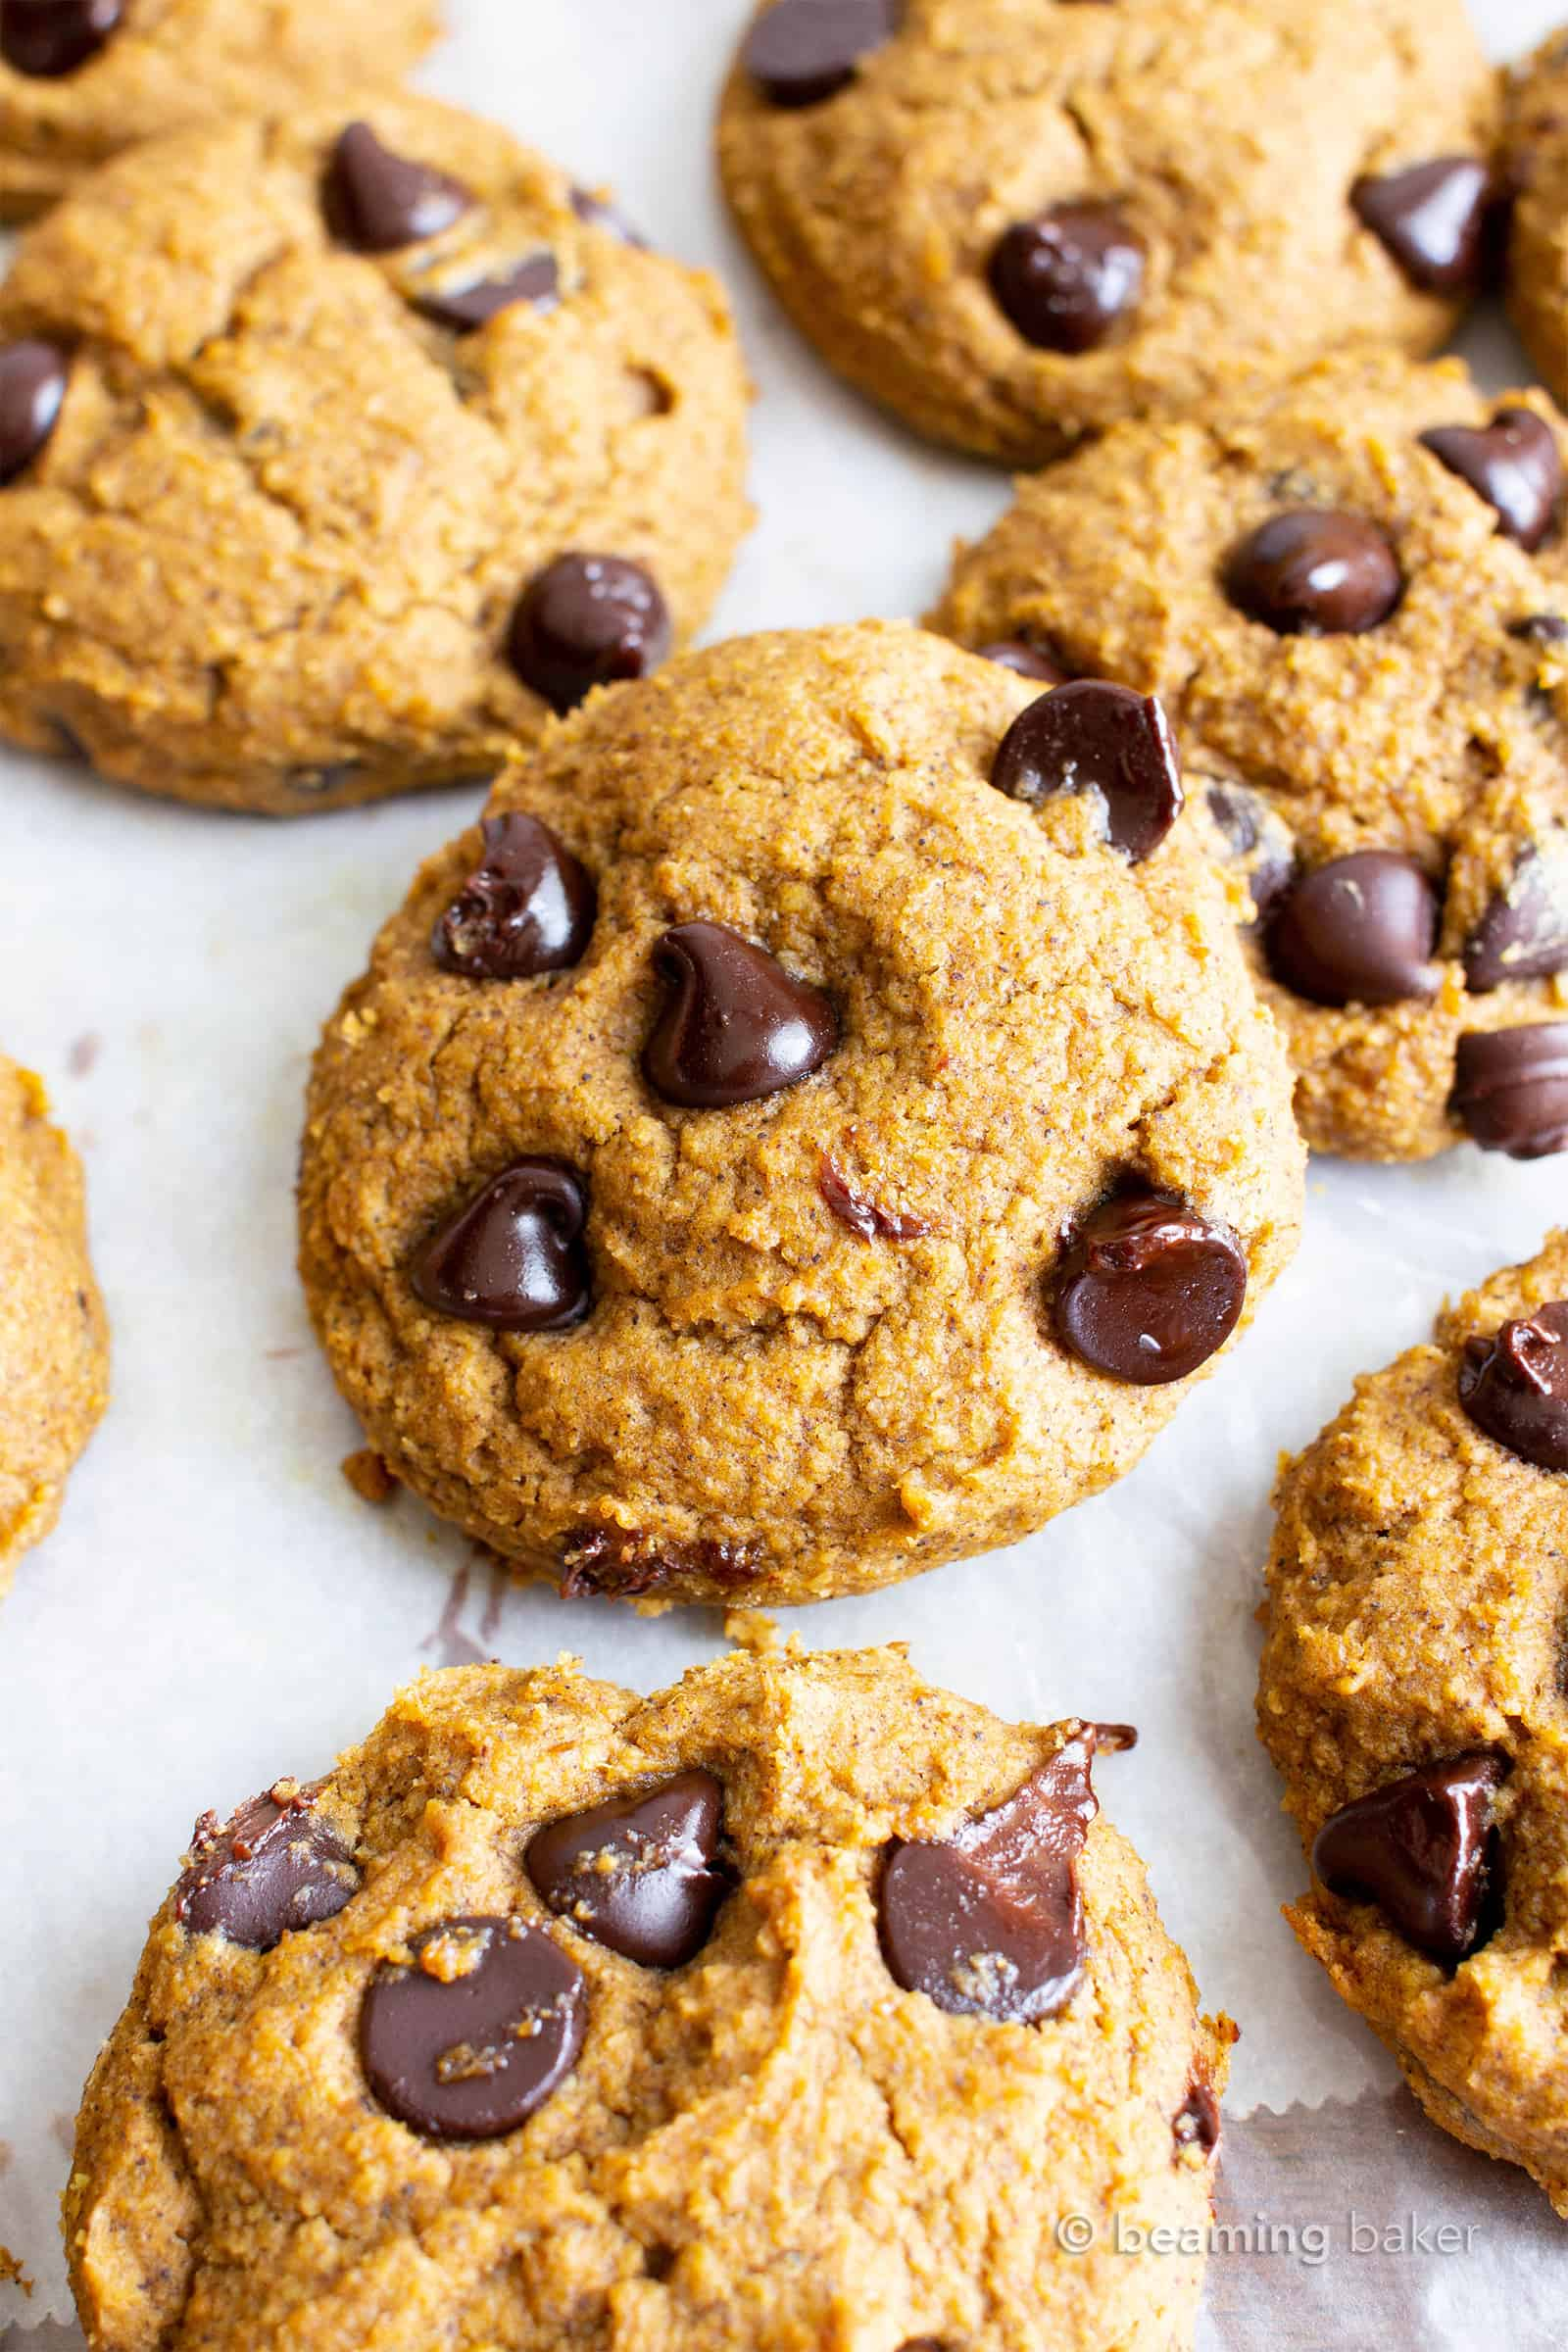 Soft 'n fluffy gluten free pumpkin cookies bursting with chocolate chips! An easy recipe for moist, cake-like vegan gluten free pumpkin chocolate chip cookies with warm fall spices. #GlutenFree #Vegan #Pumpkin #Cookies | Recipe at BeamingBaker.com